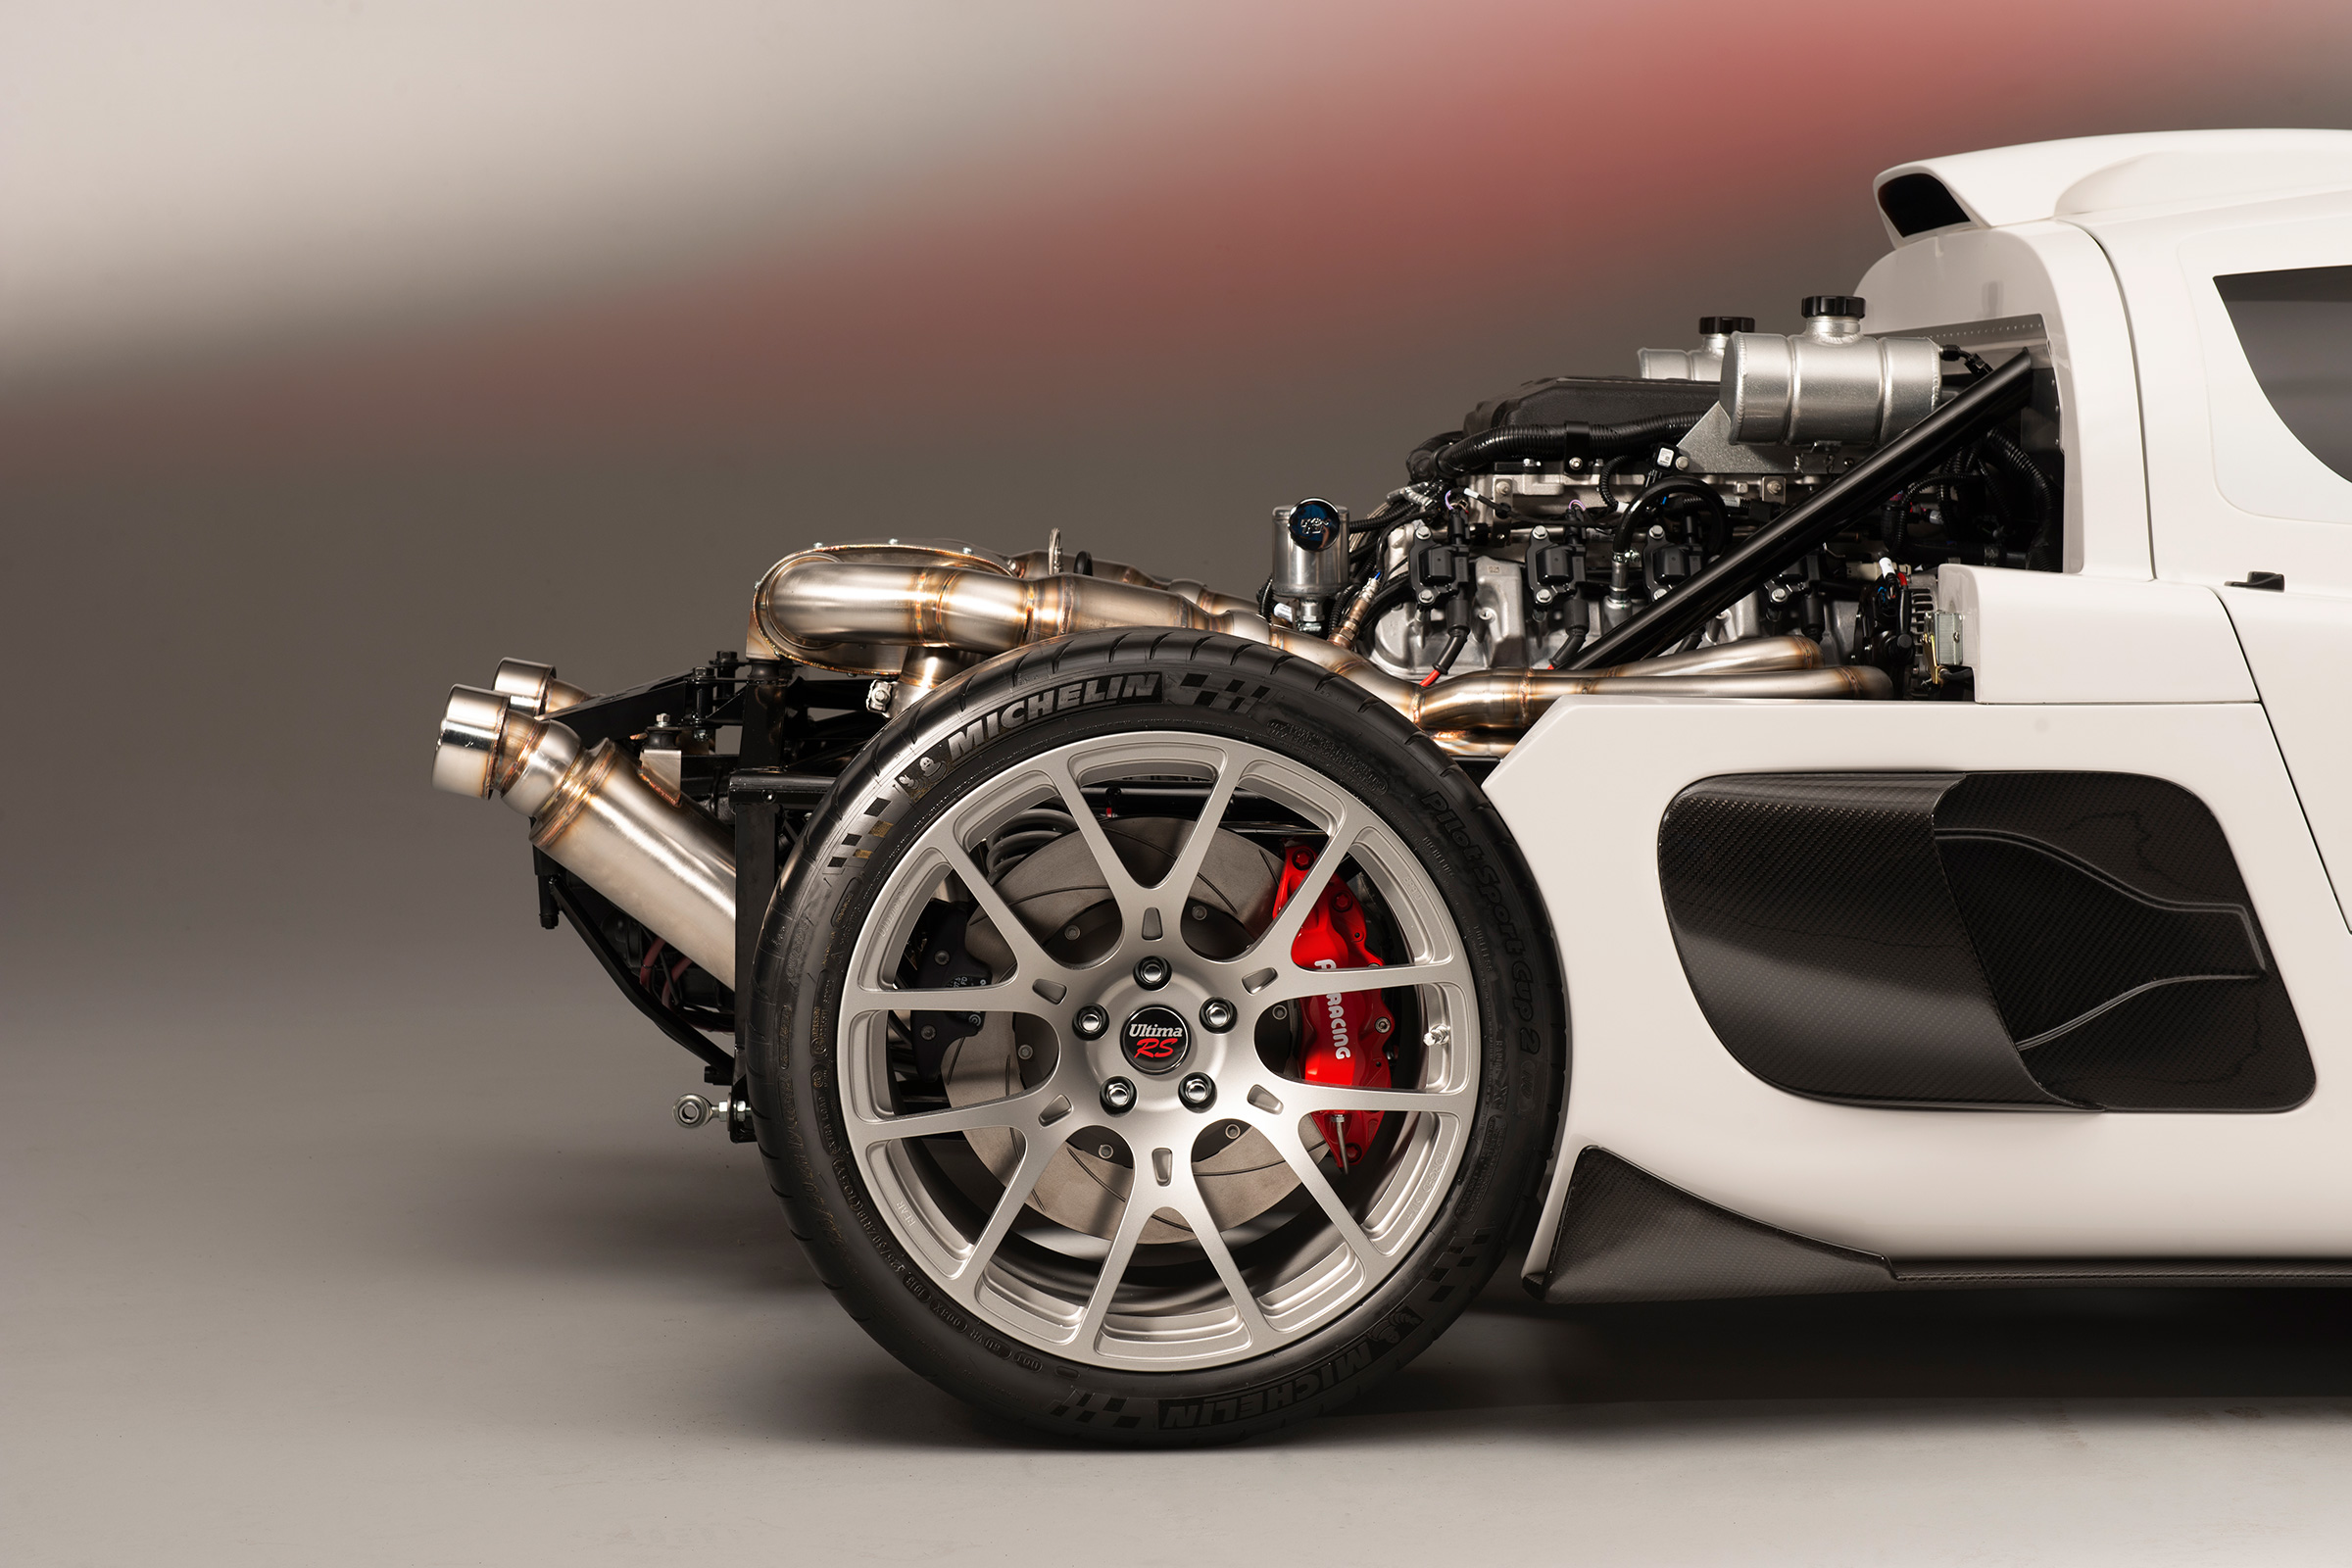 1200bhp Ultima Rs Revealed To Challenge The Koenigsegg Agera